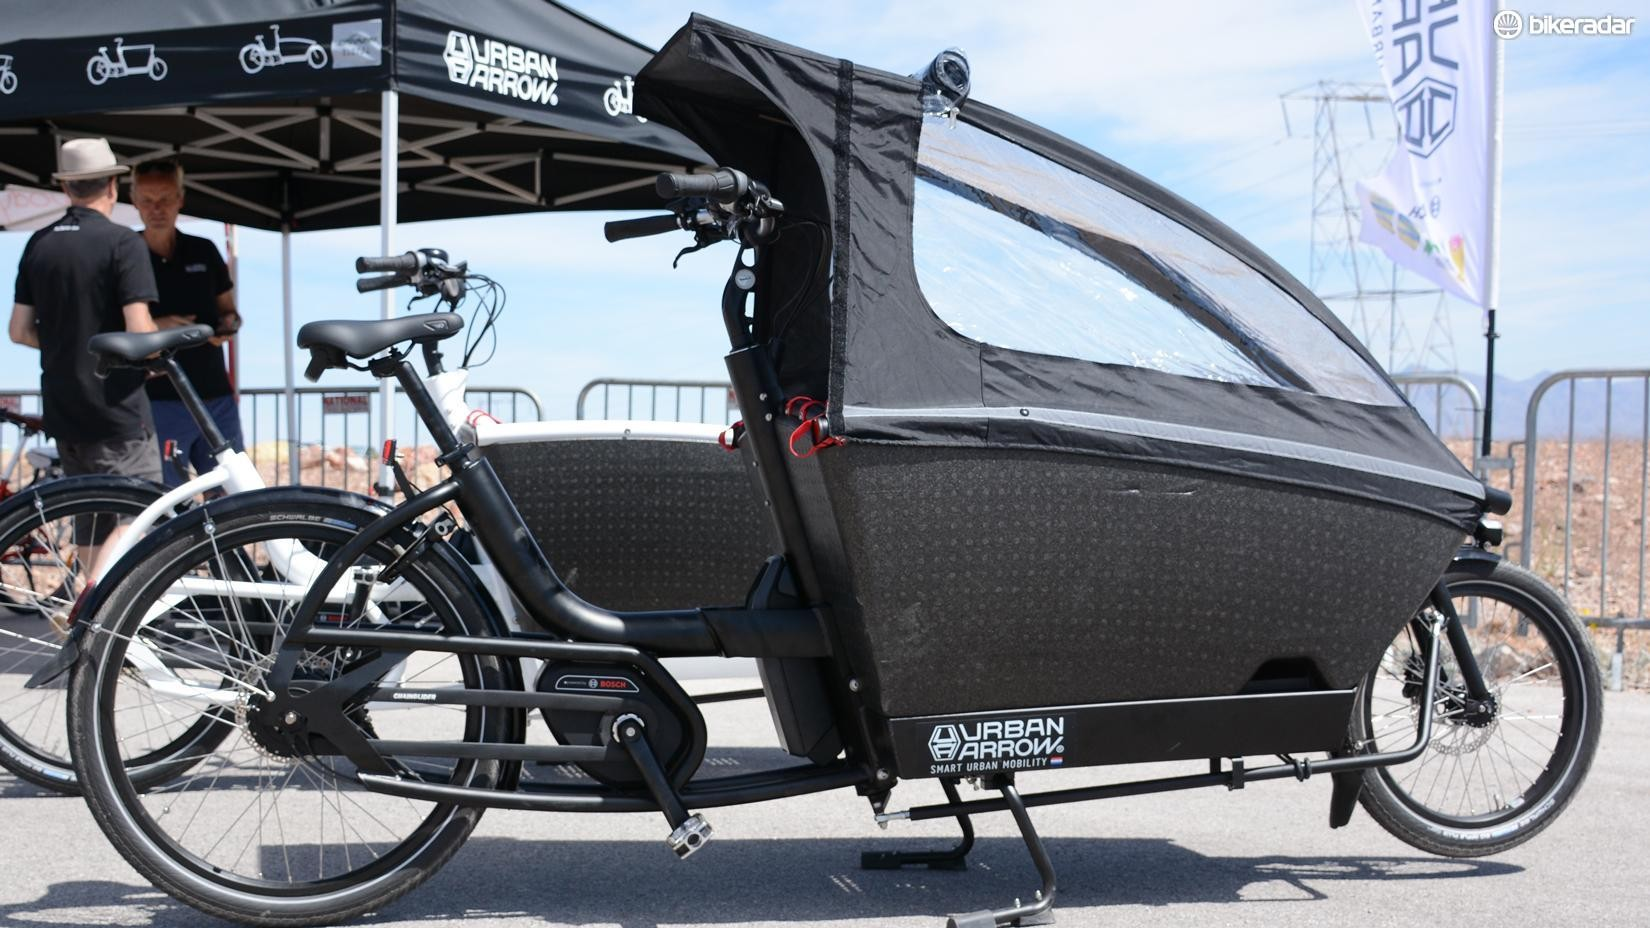 Urban Arrow's cargo bikes could replace your daily driver